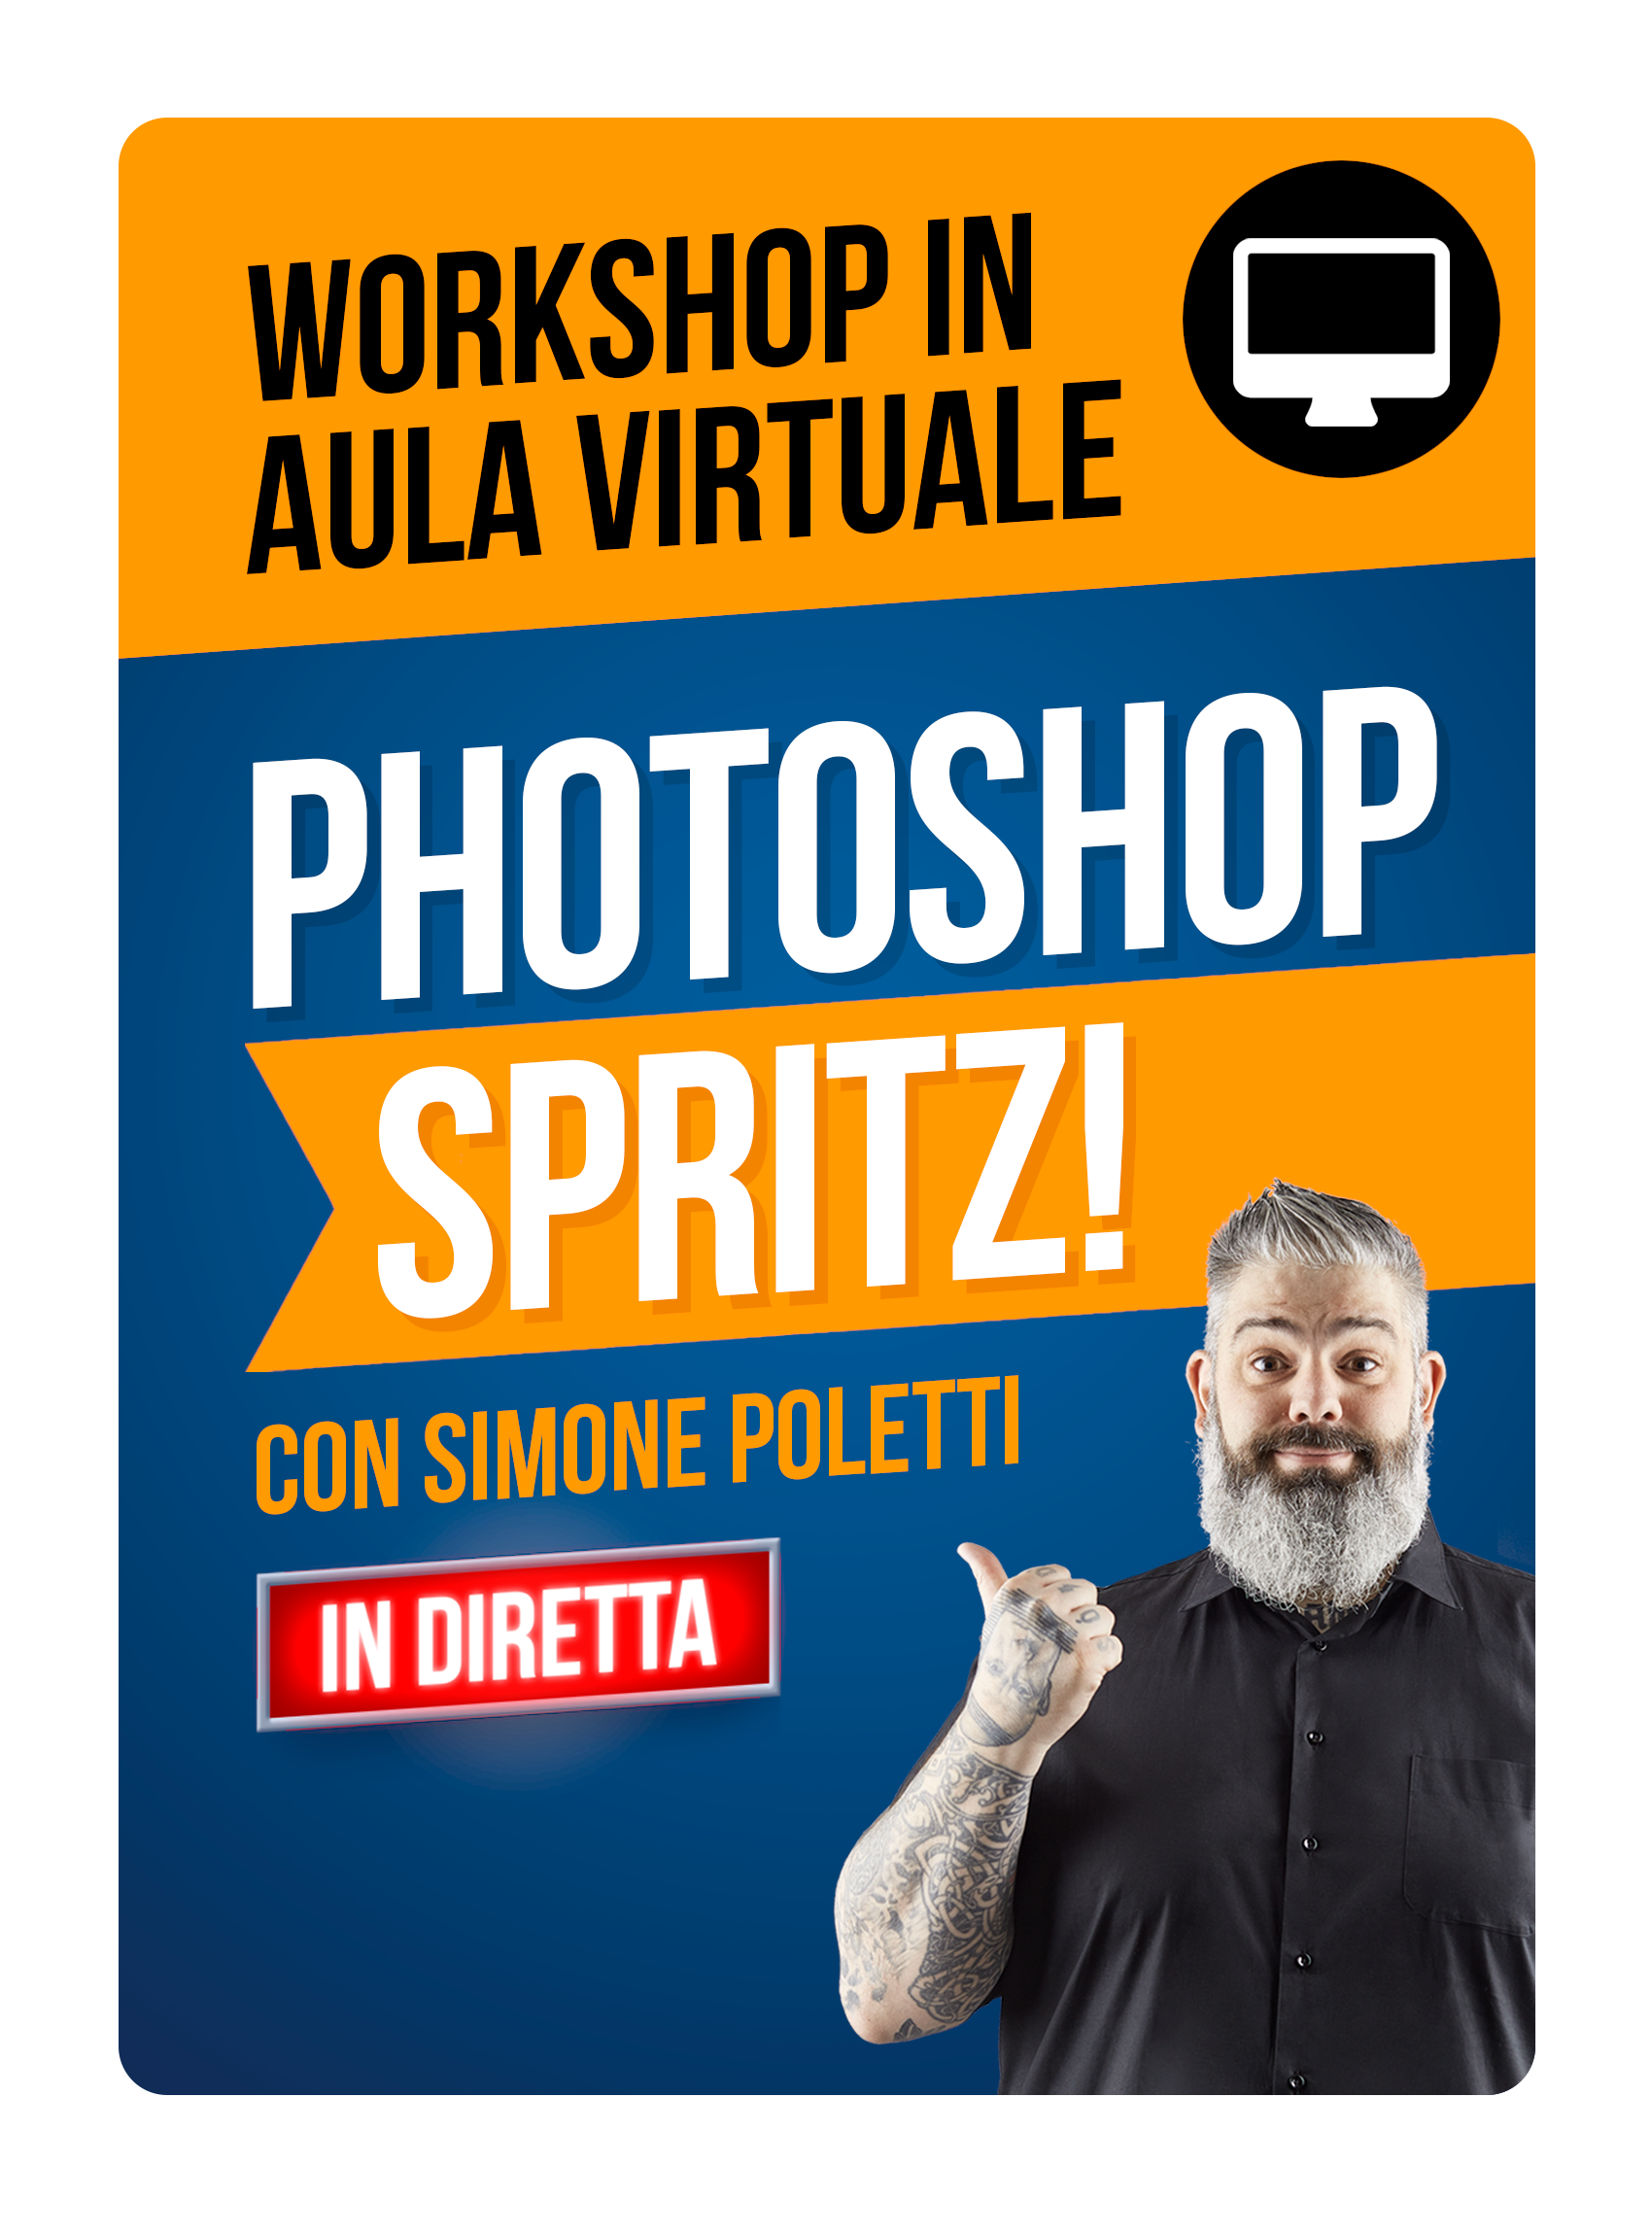 Workshop Photoshop SPRITZ! in Aula Virtuale